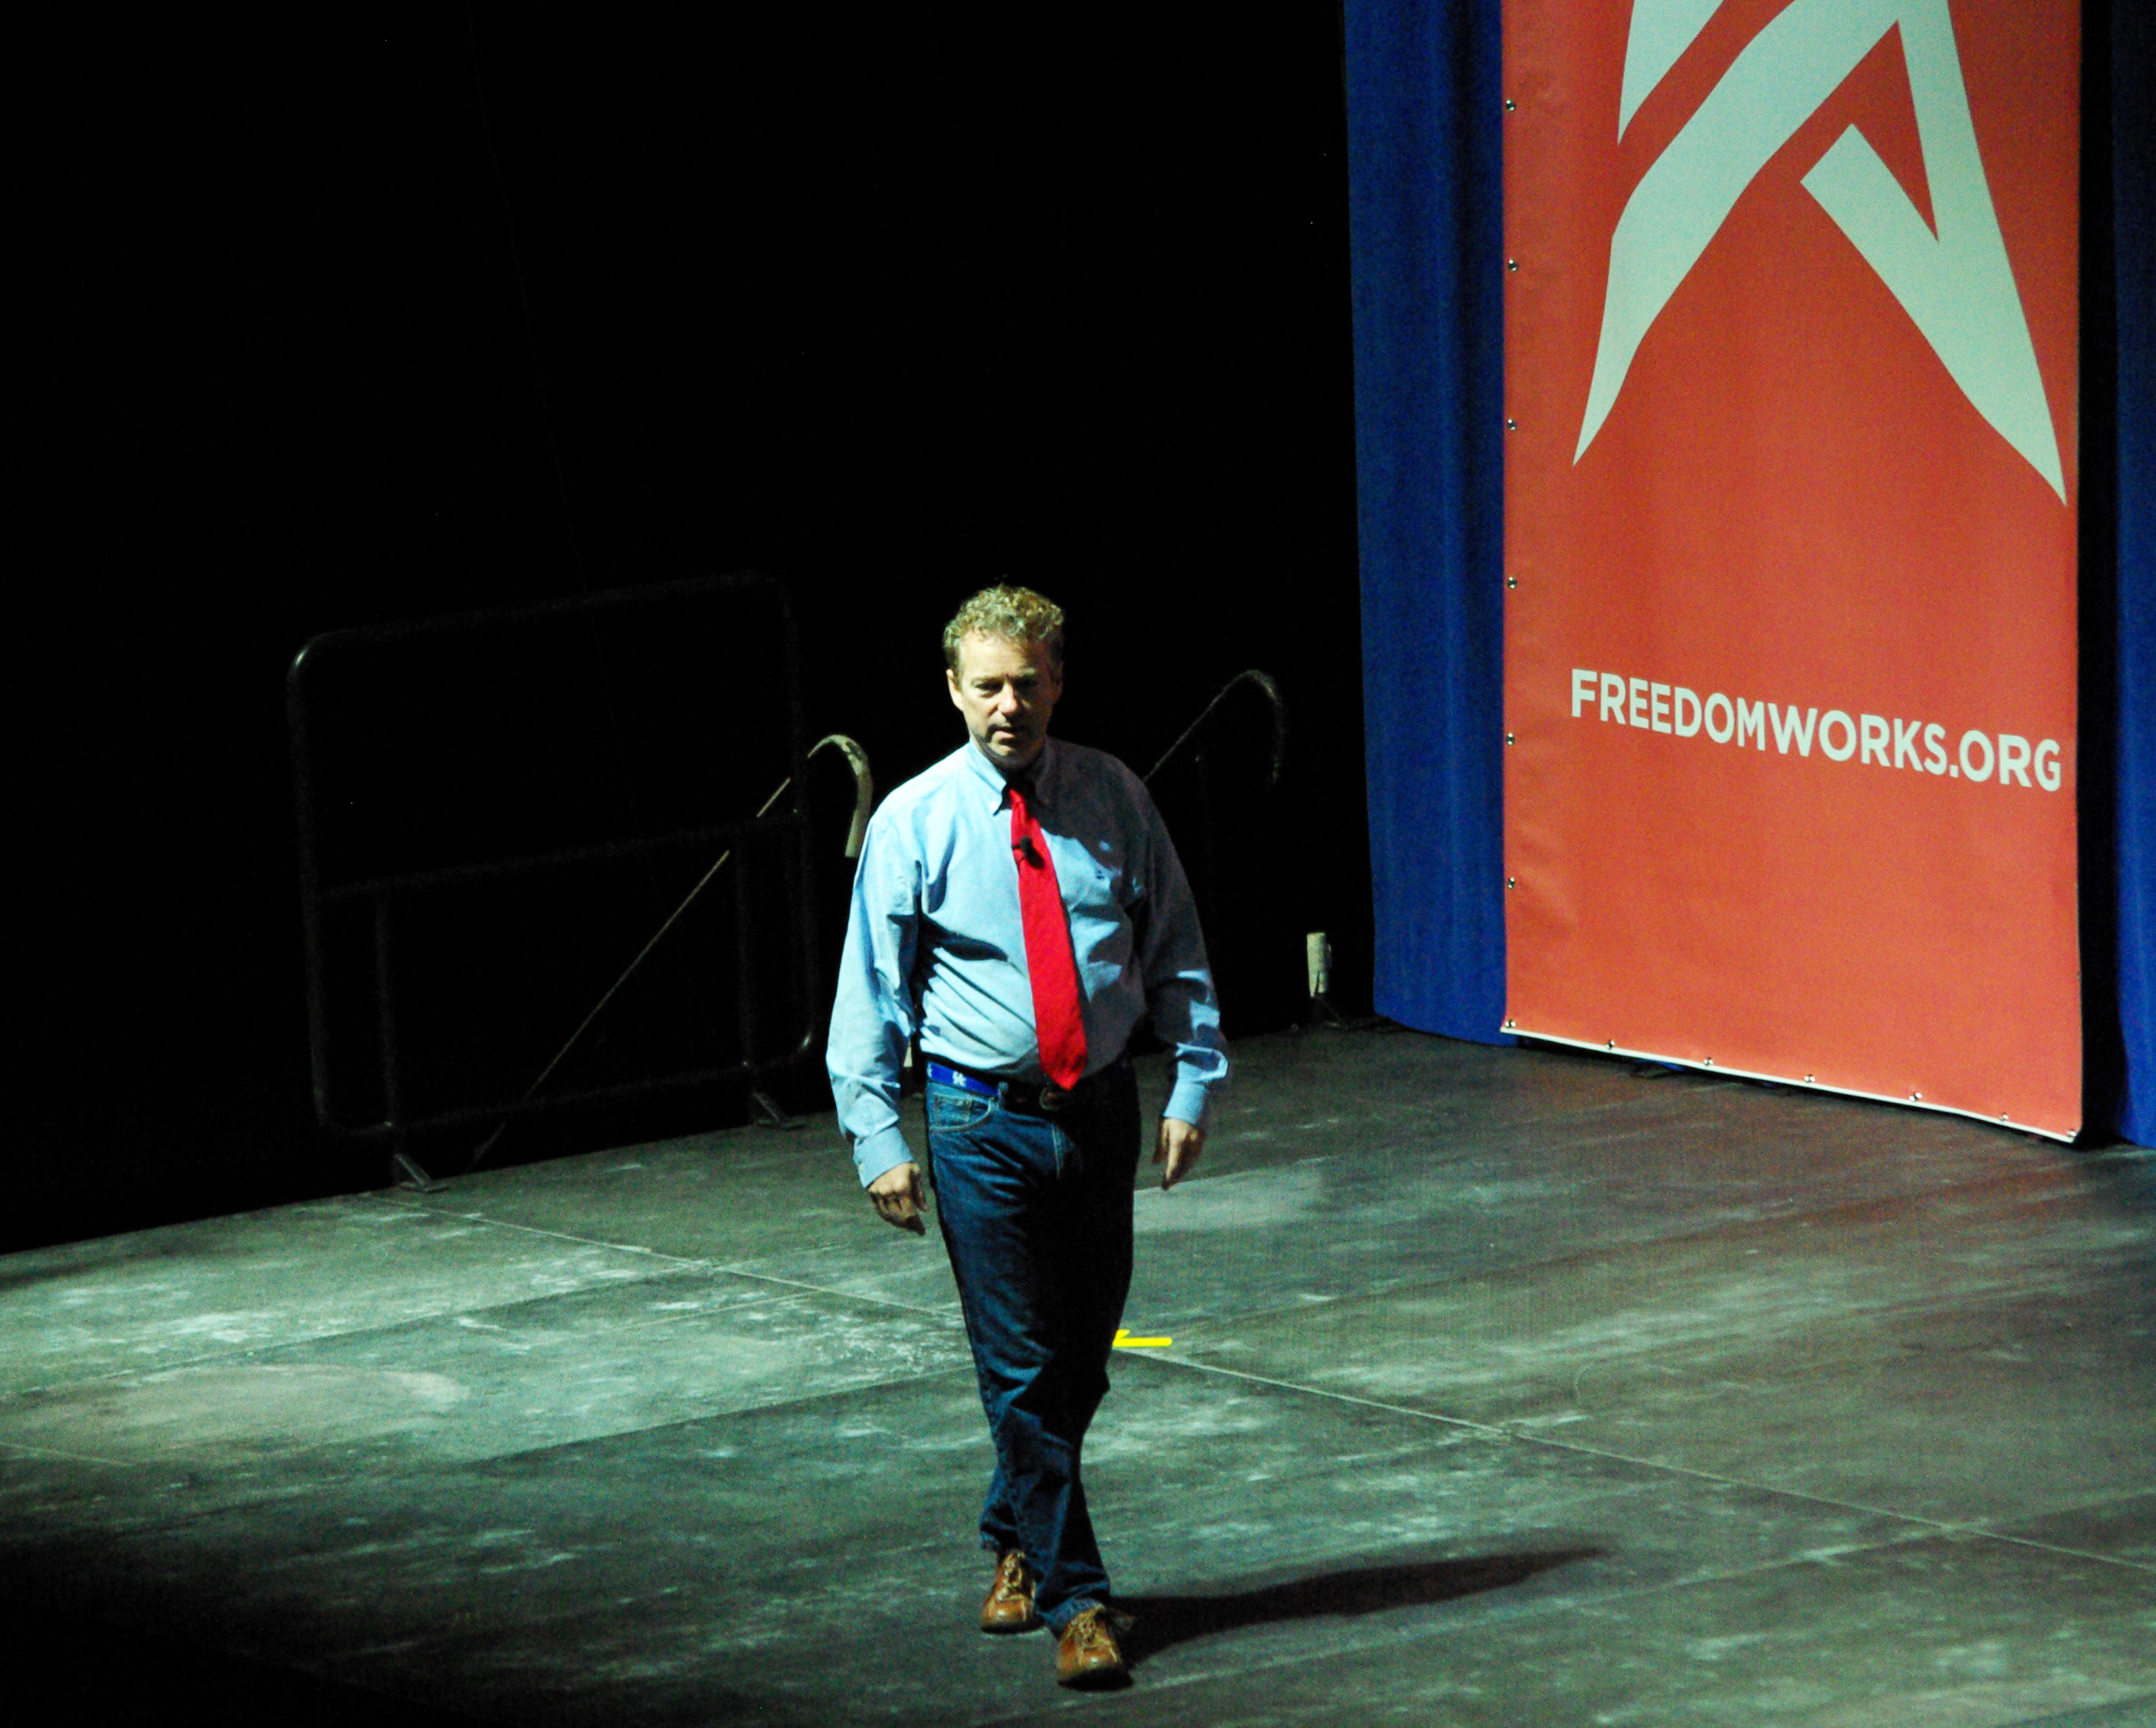 Kentucky Senator Rand Paul takes the stage at US Cellular Center in Cedar Rapids Iowa. The presidential candidate took part in the Freedomworks Rising Tide Summit Saturday. -photo by Jeremy Griffith